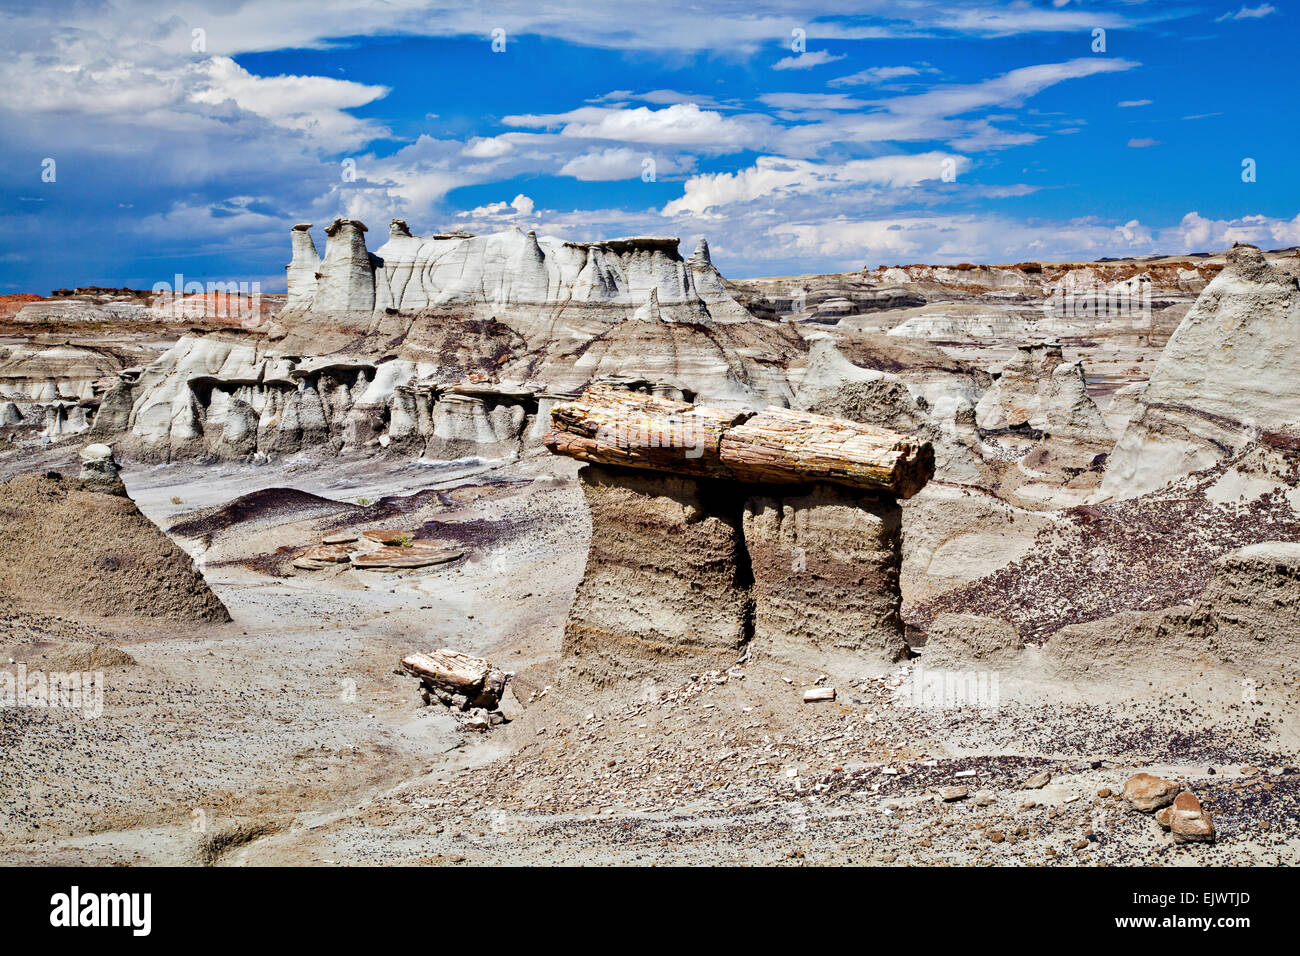 The Bisti De Na Zin Wilderness Area near Farmington, New Mexico, is a wilderness area filled with colorful earthforms - Stock Image